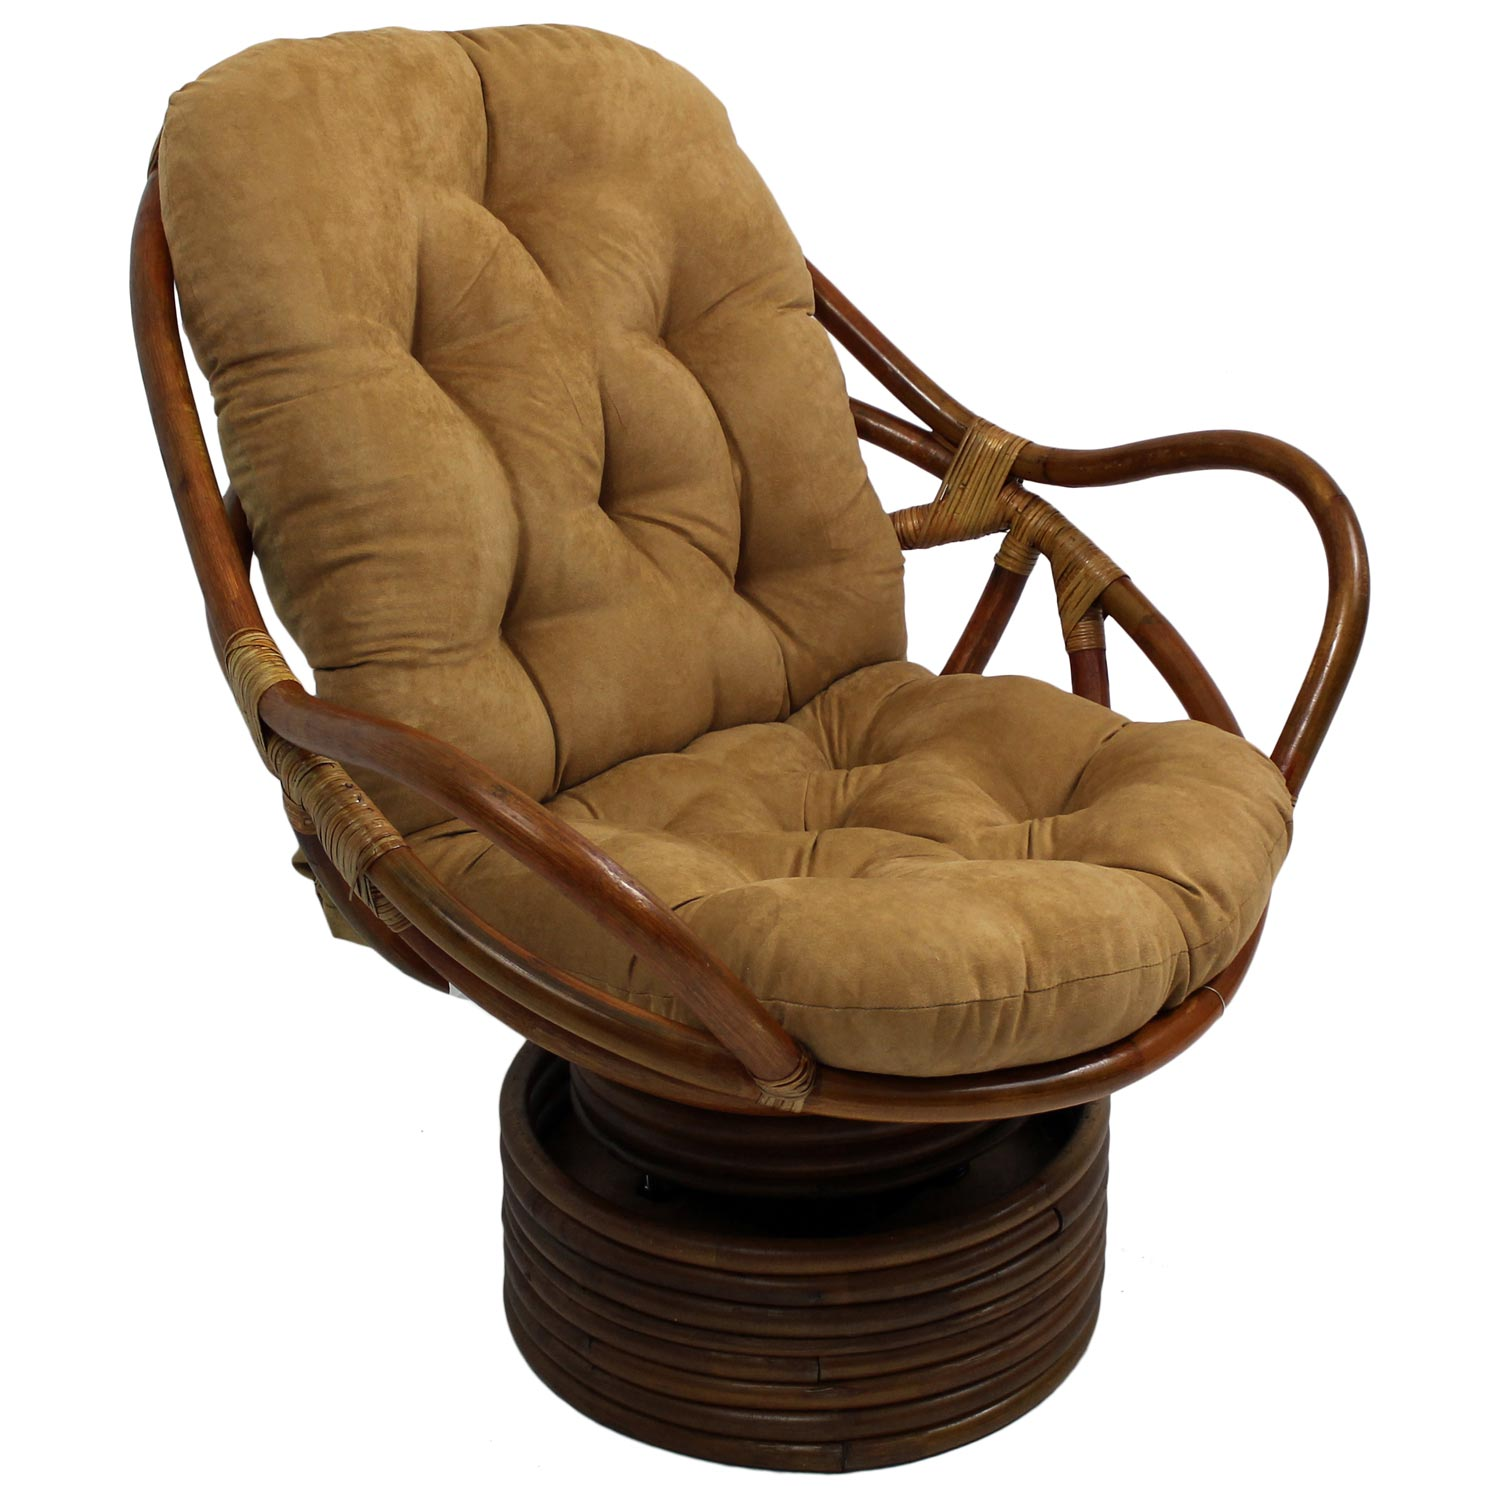 Bali Rattan Swivel Rocker Chair Tufted Microsuede